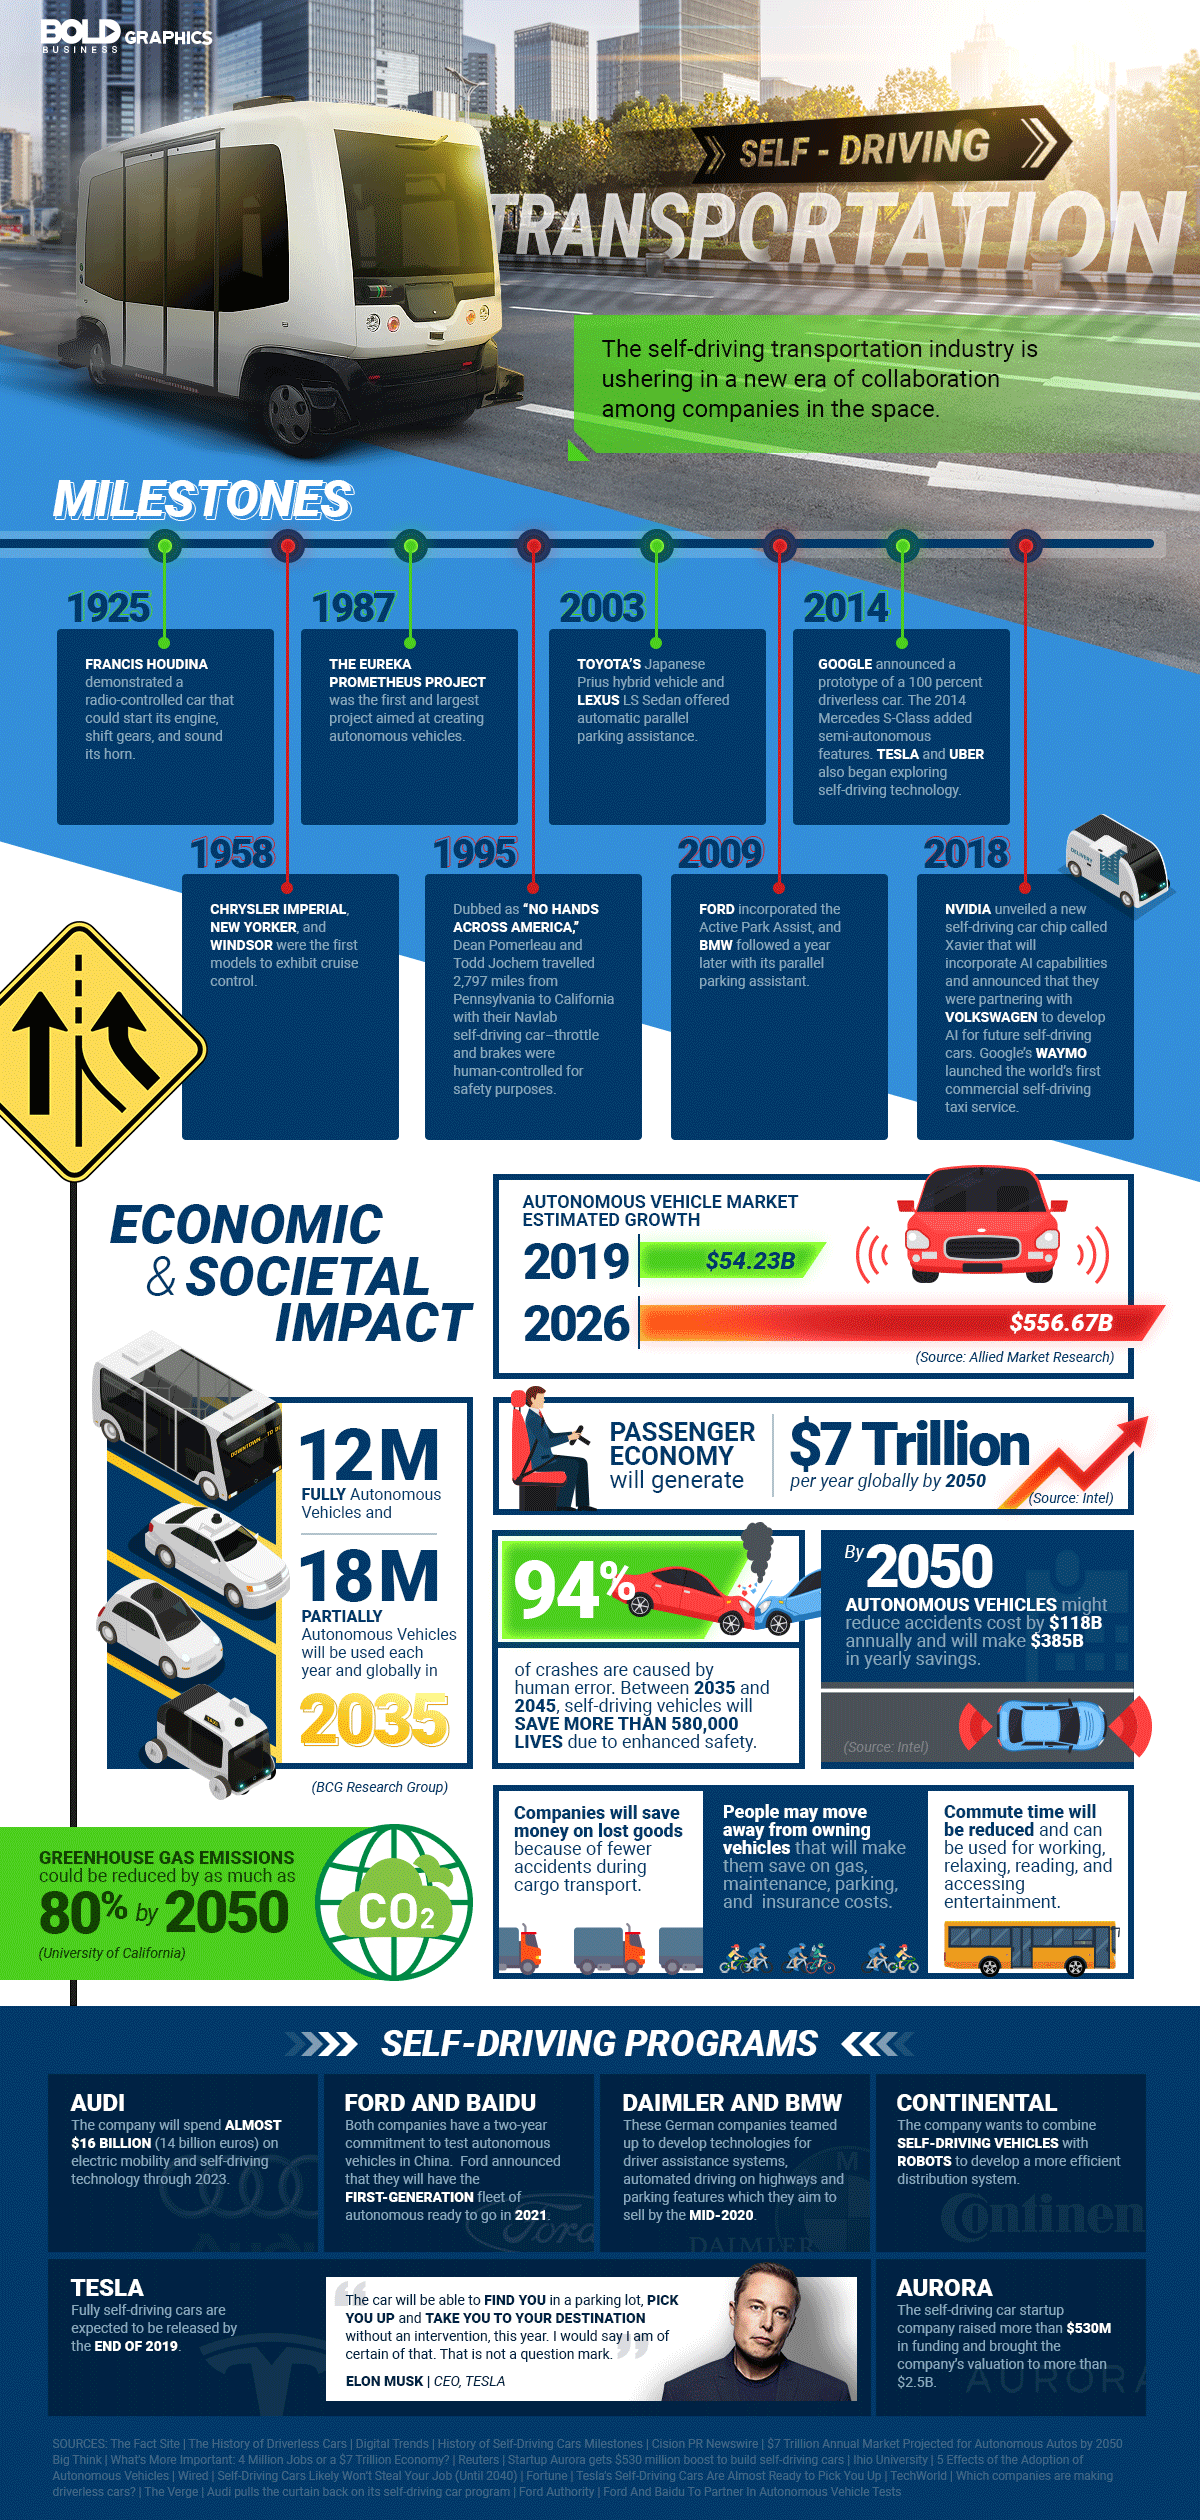 infographic about the collaboration of different companies to fuel the future development of self-driving technology